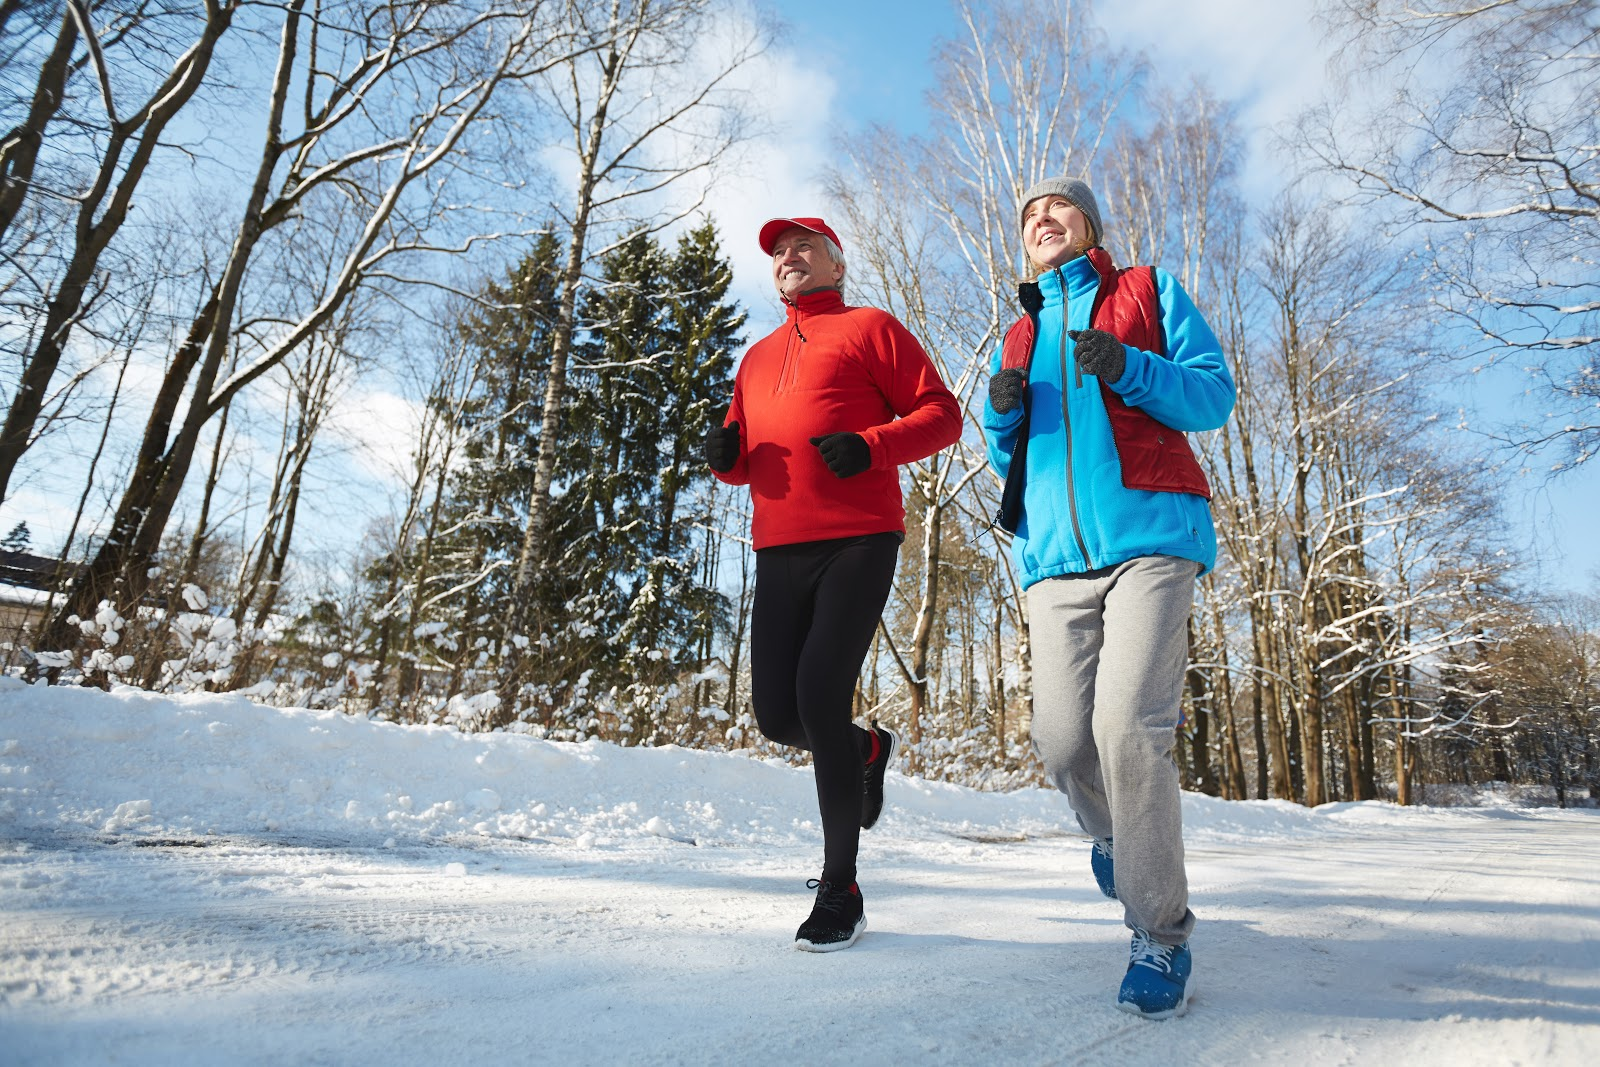 Man and woman jogging in the snow to shake off the winter blues